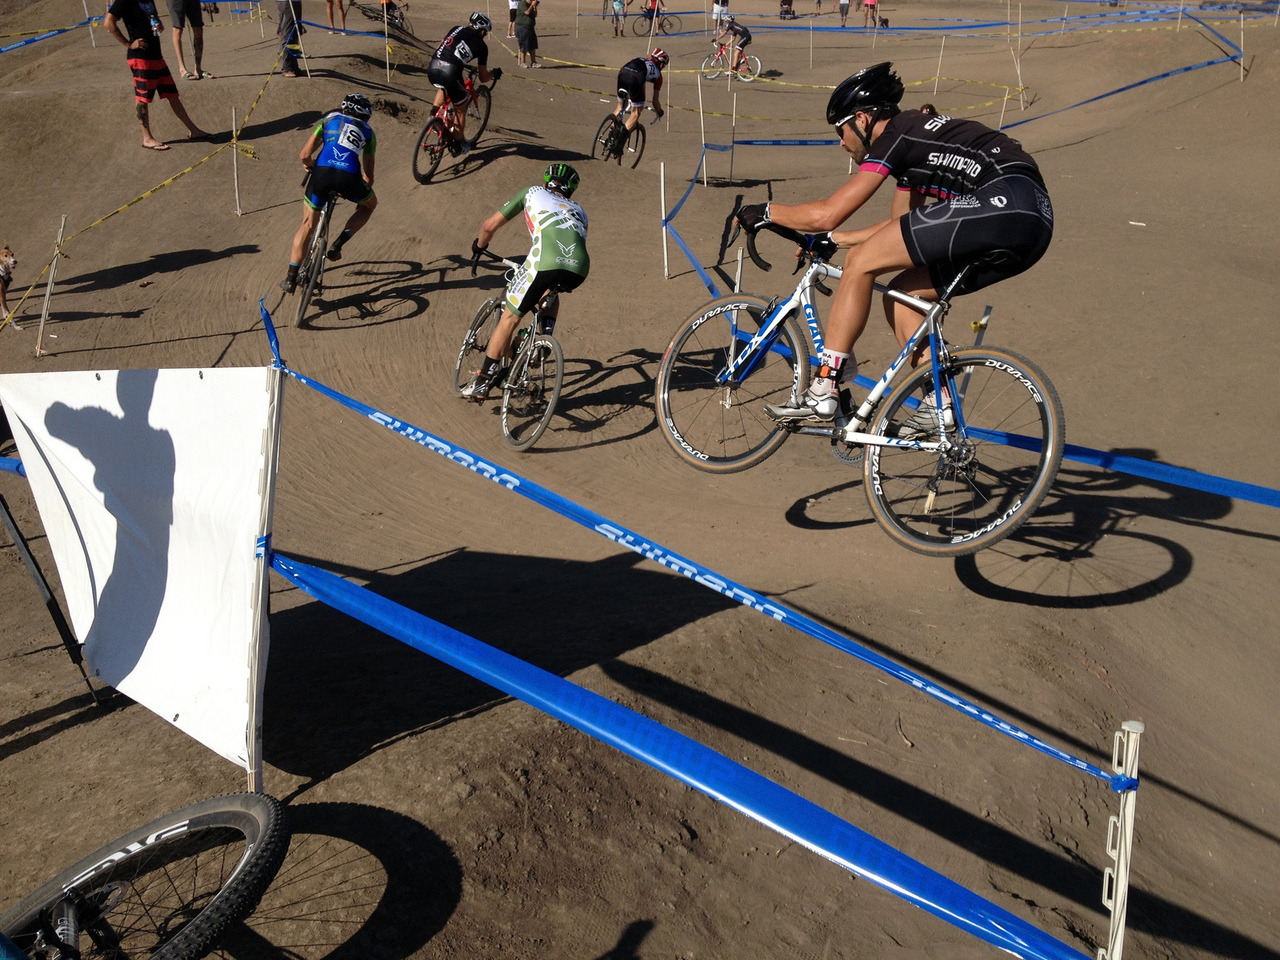 Cyclocross season kicked of in SoCal last weekend and I was in full heckle-and-beer mode under the Mudfoot tent. I am not racing myself this year as I have been focusing 100% on XC mountain bike racing, and my first race since my horrible Cat 2 finish earlier this year is this Sunday. I am a bit nervous, but mostly excited to get out there and rip out. Skinksuit is being dusted off as I type this. This photo is of my buddy Jonny Weir catching some air over the hips on the course. Cowbell!